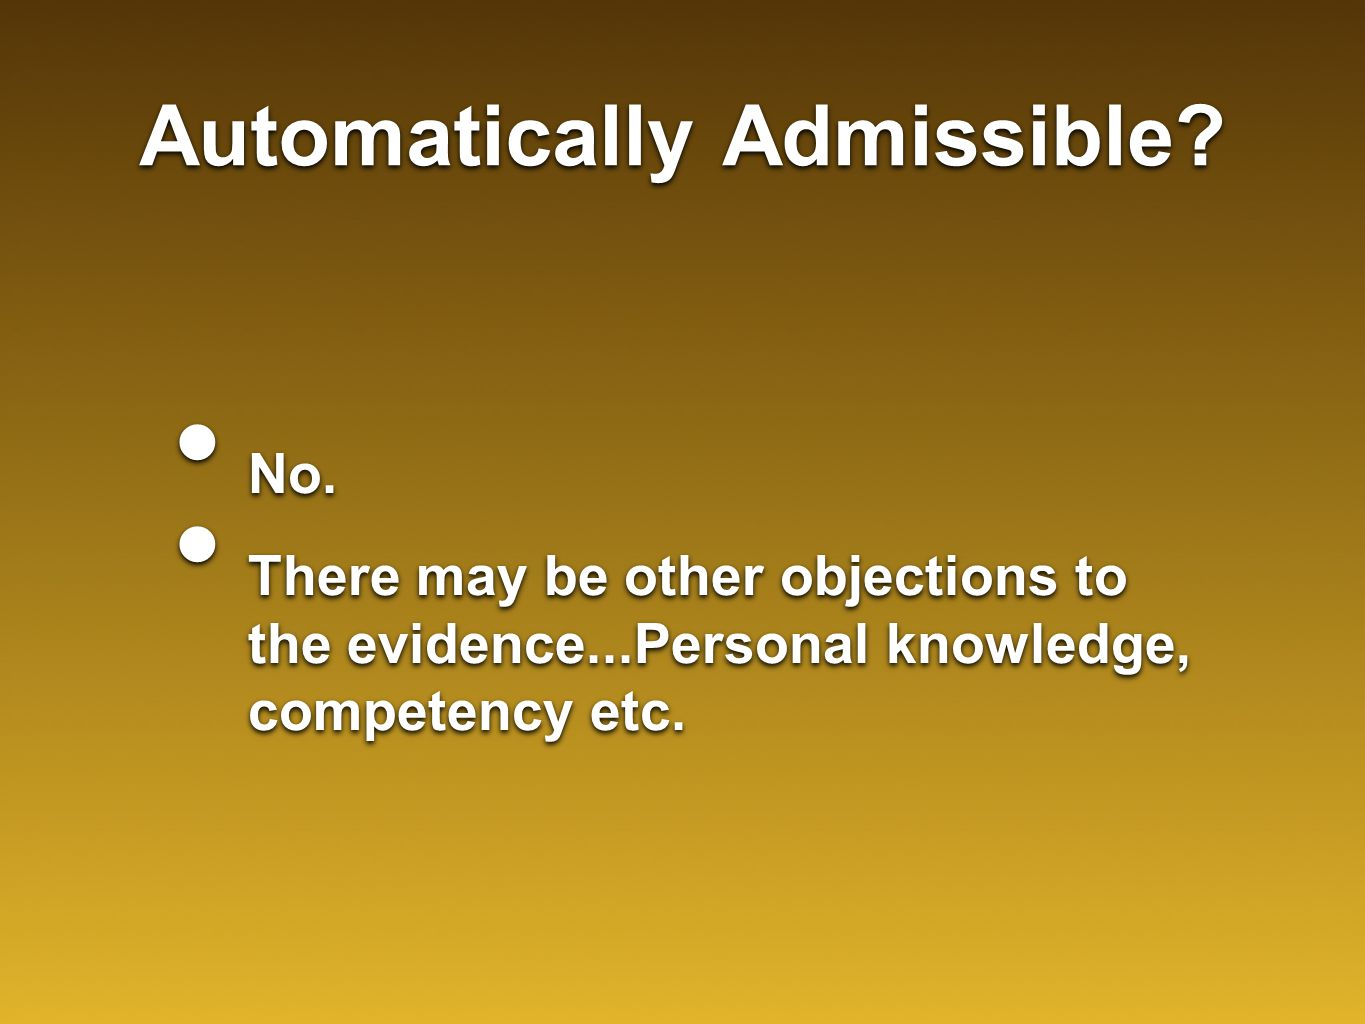 Automatically Admissible? No. There may be other objections to the evidence...Personal knowledge, competency etc. No. There may be other objections to